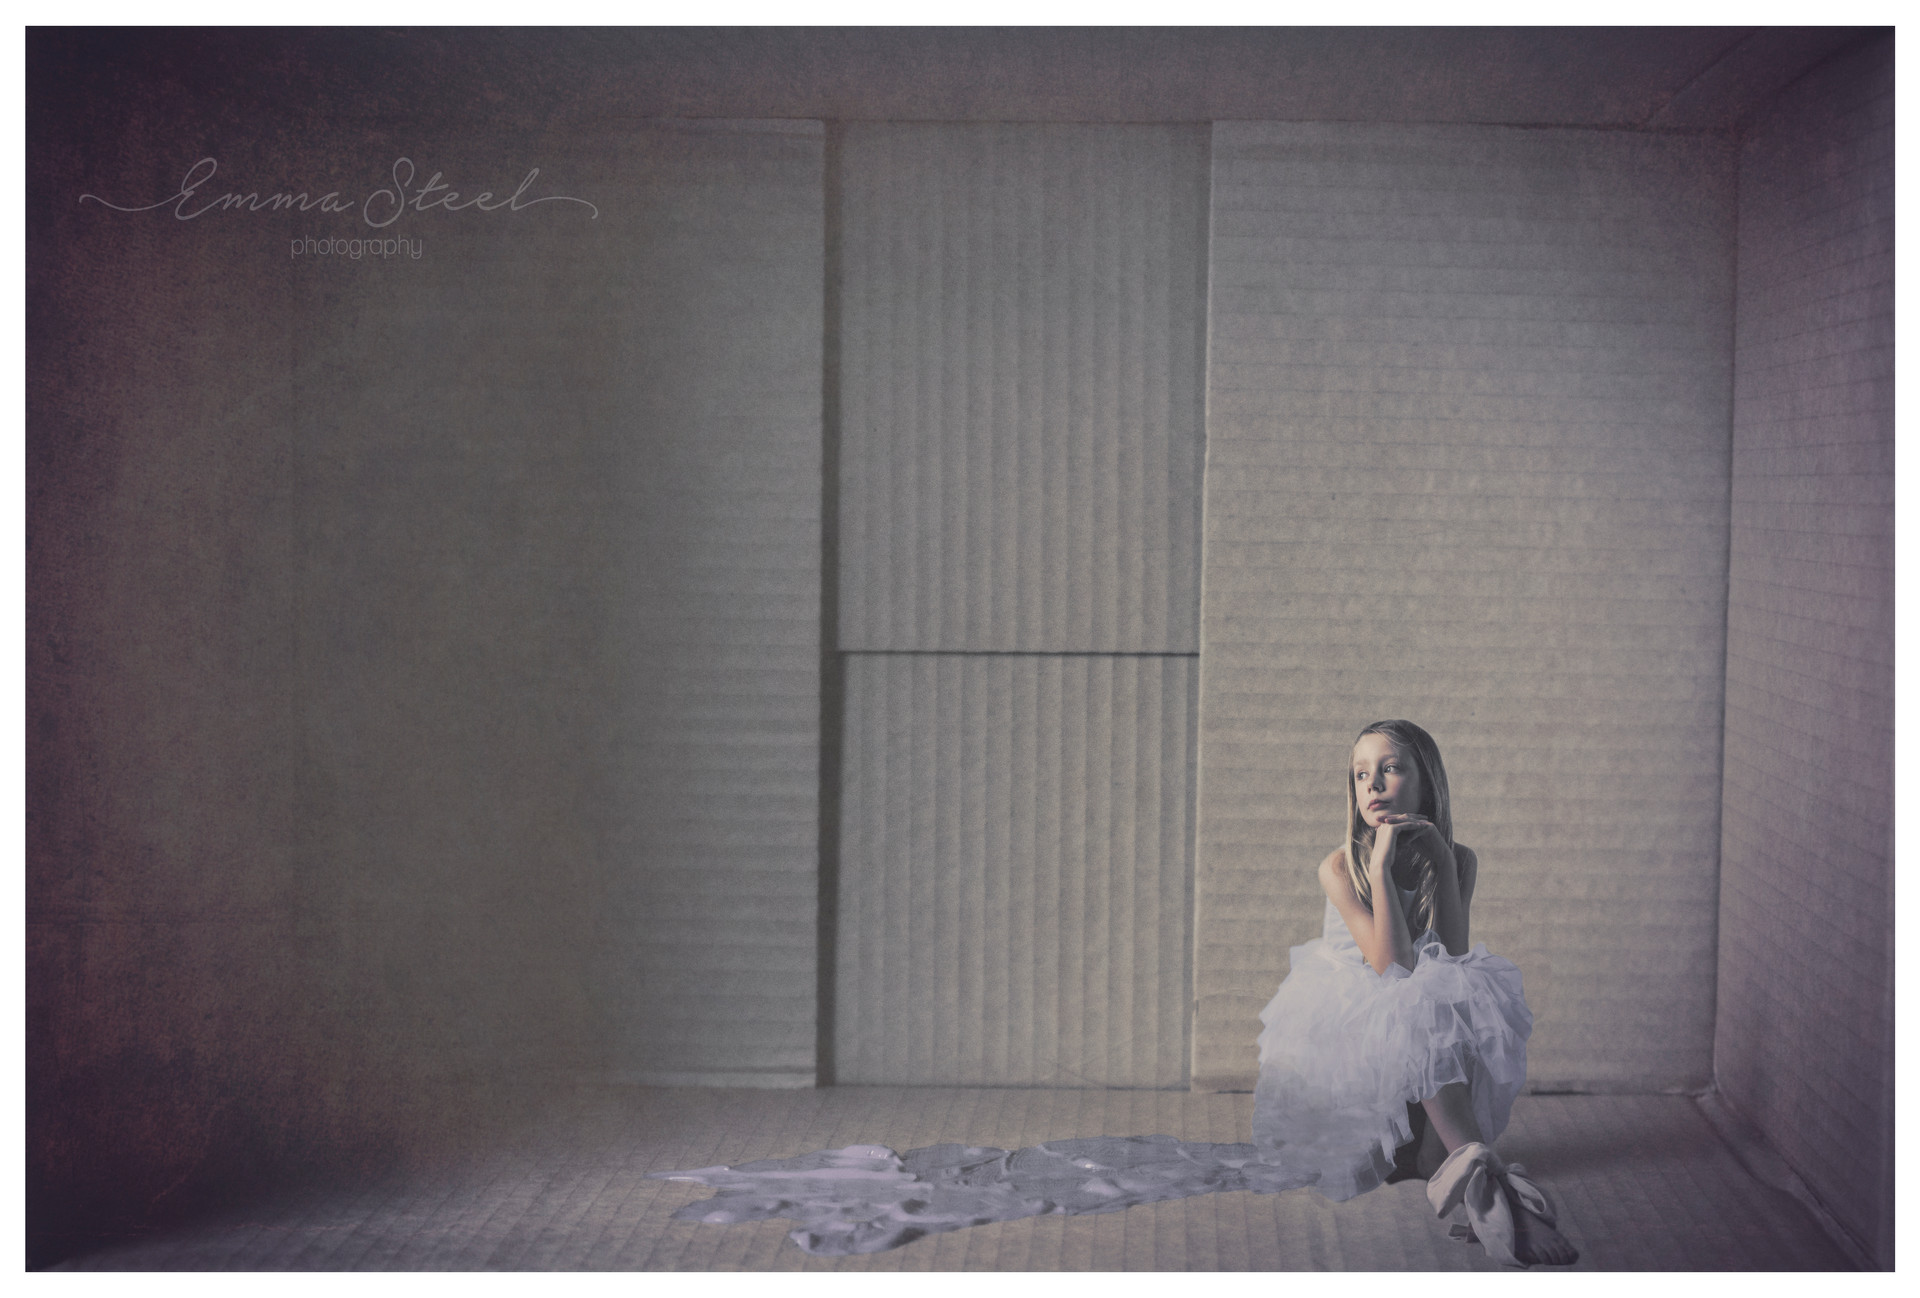 Creating images using composites to extend the imagination is always fun.